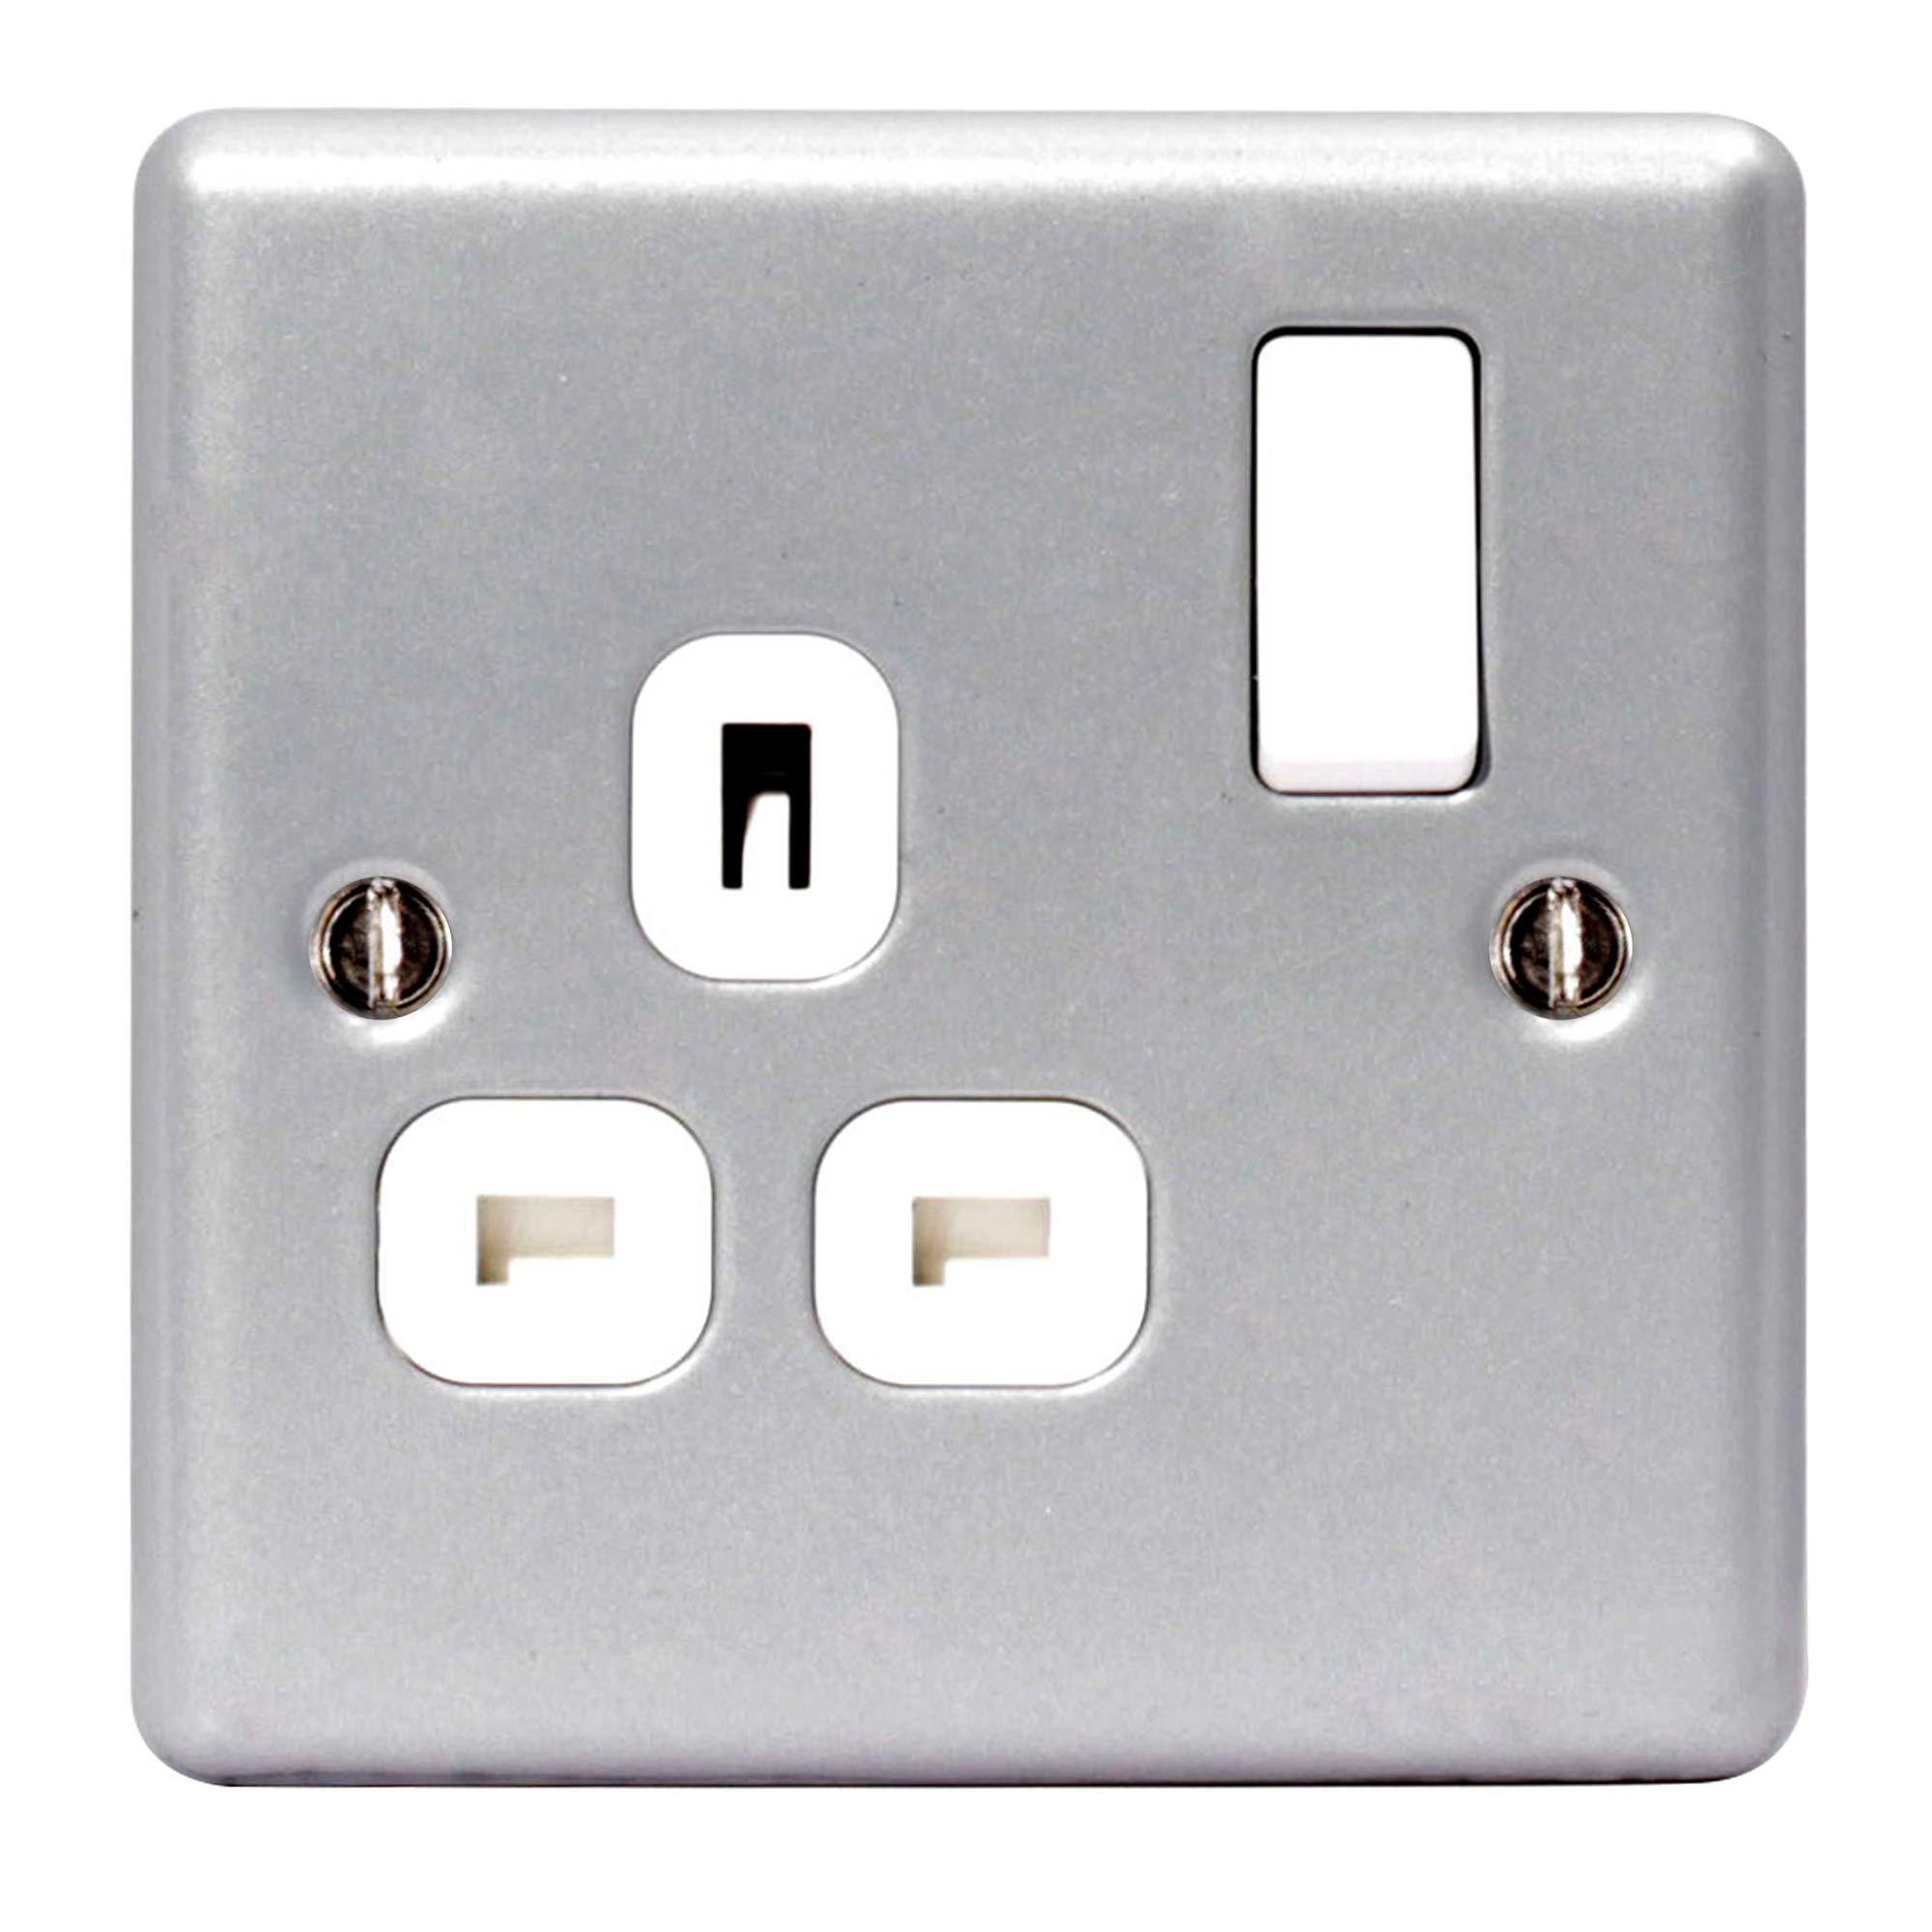 Metal Clad Switches and Sockets